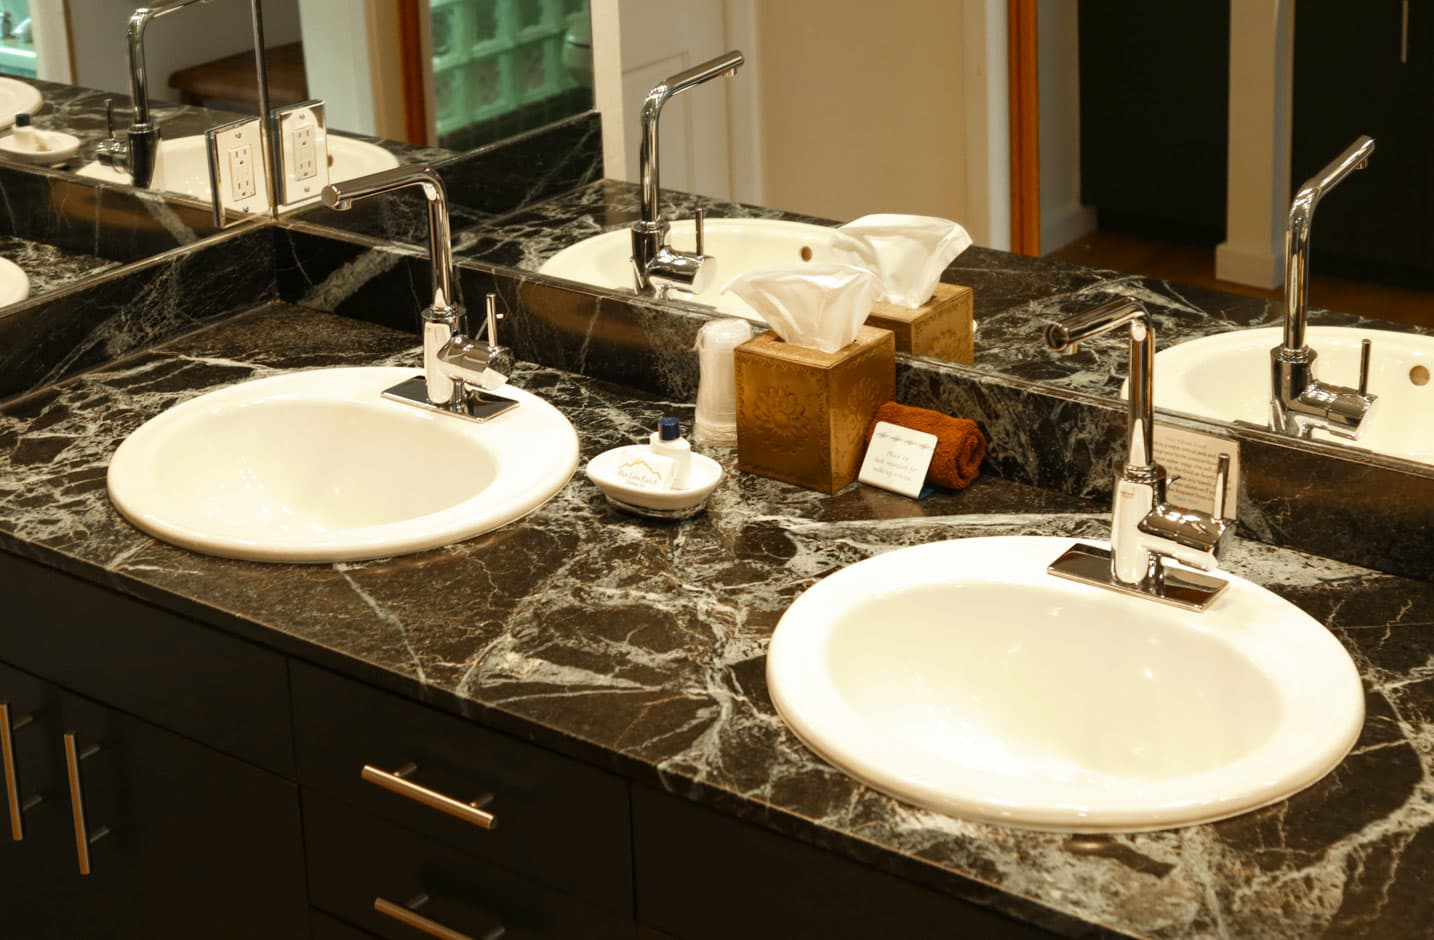 Double vanity sink with a black marble counter top